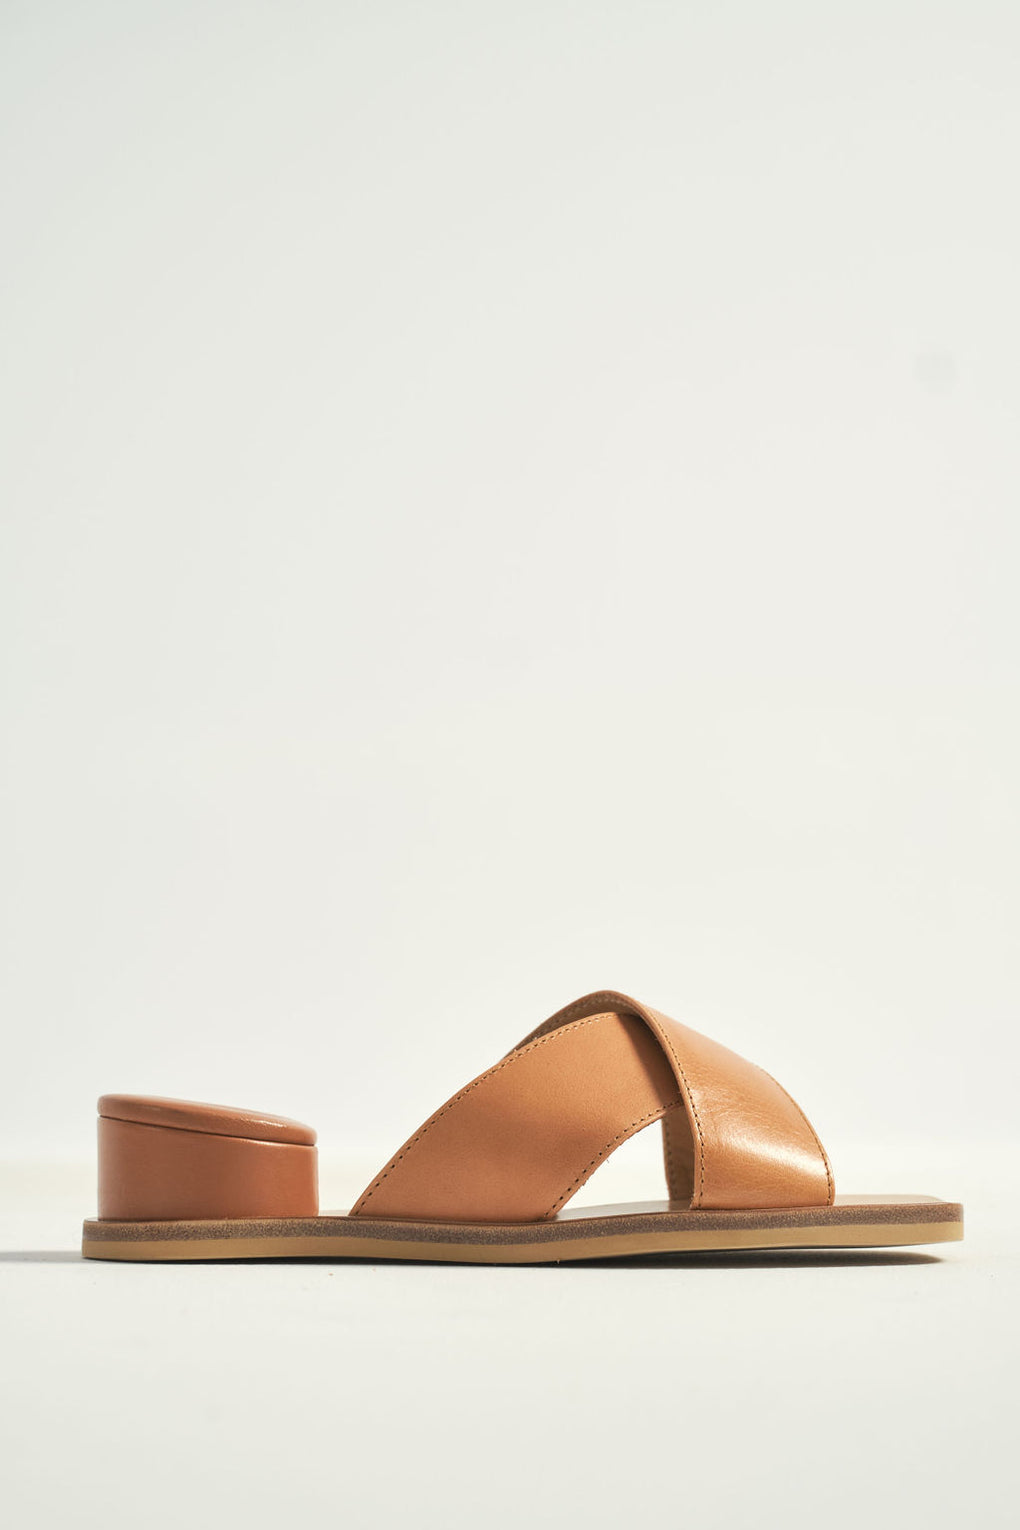 mm6-maison margiela-leather sandal-Idun-St. Paul